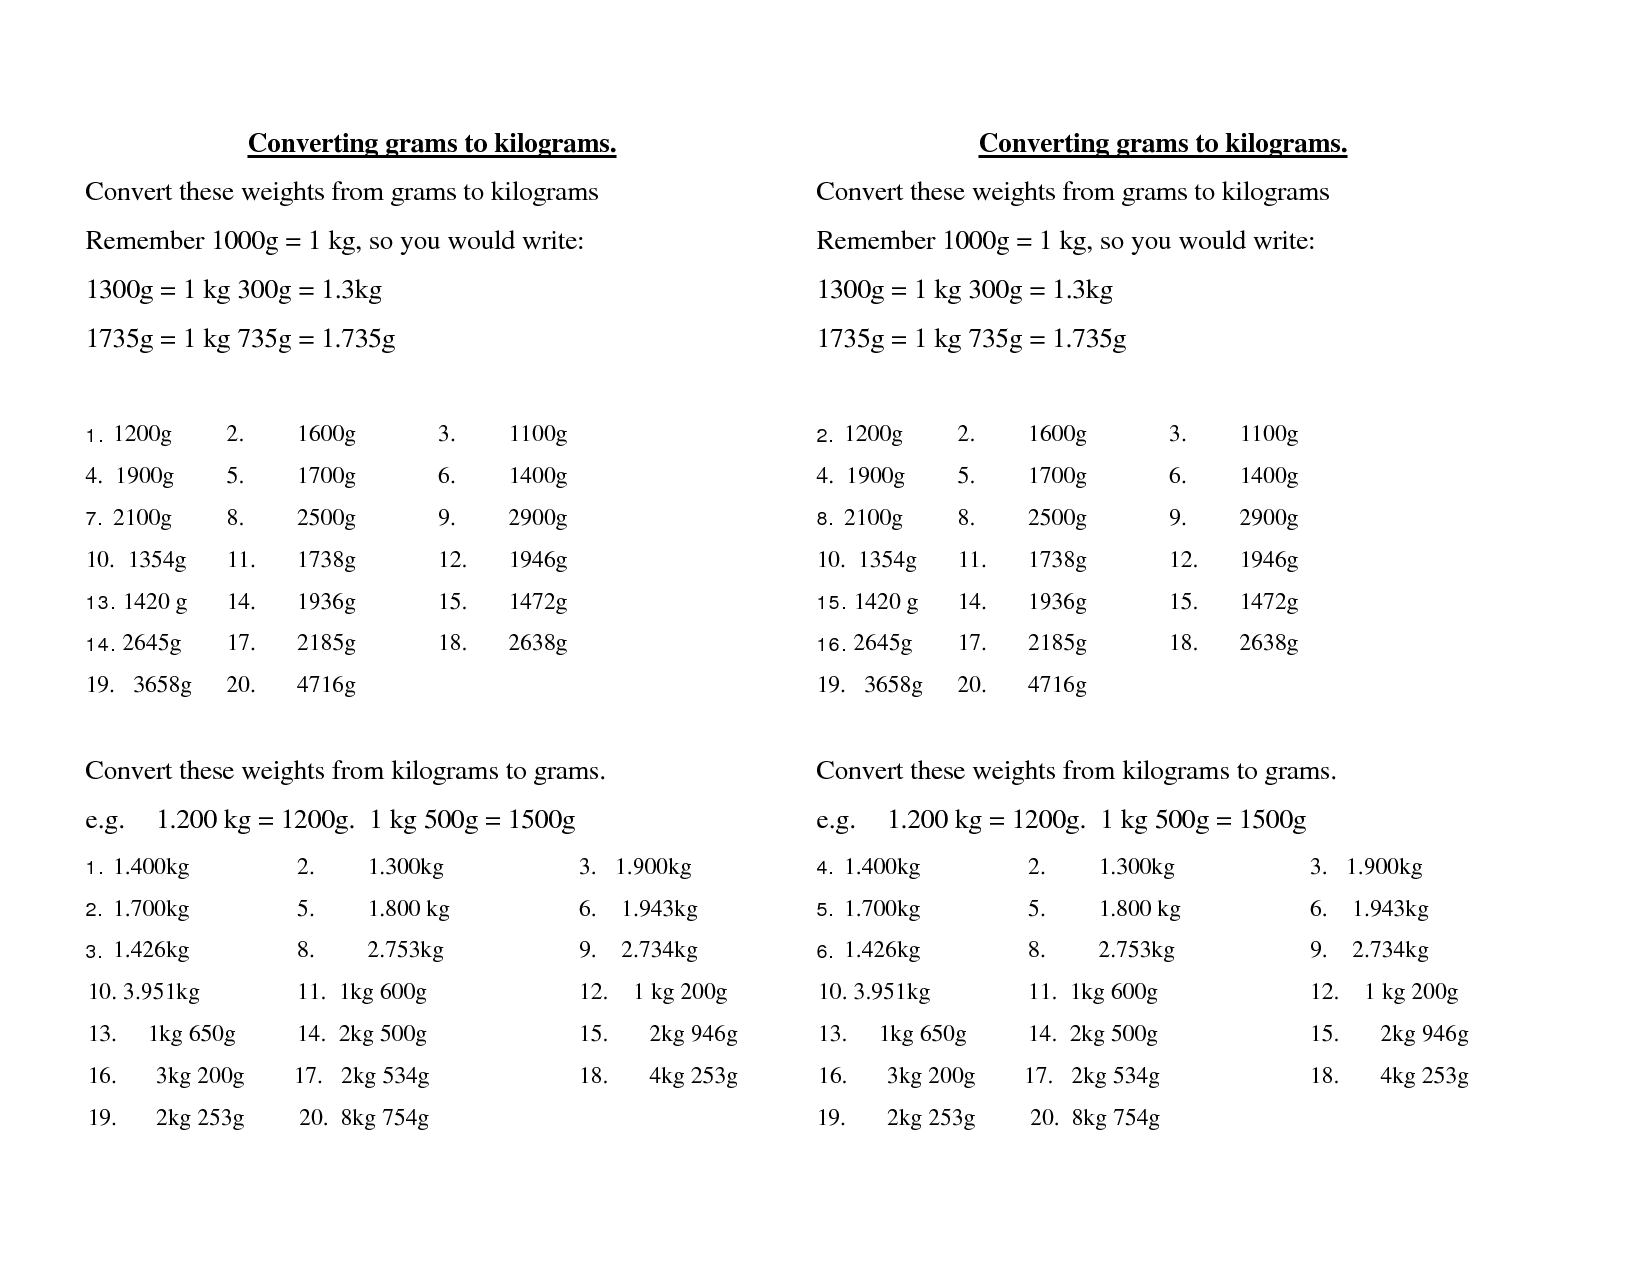 Converting Grams To Kilograms Convert These Weights From